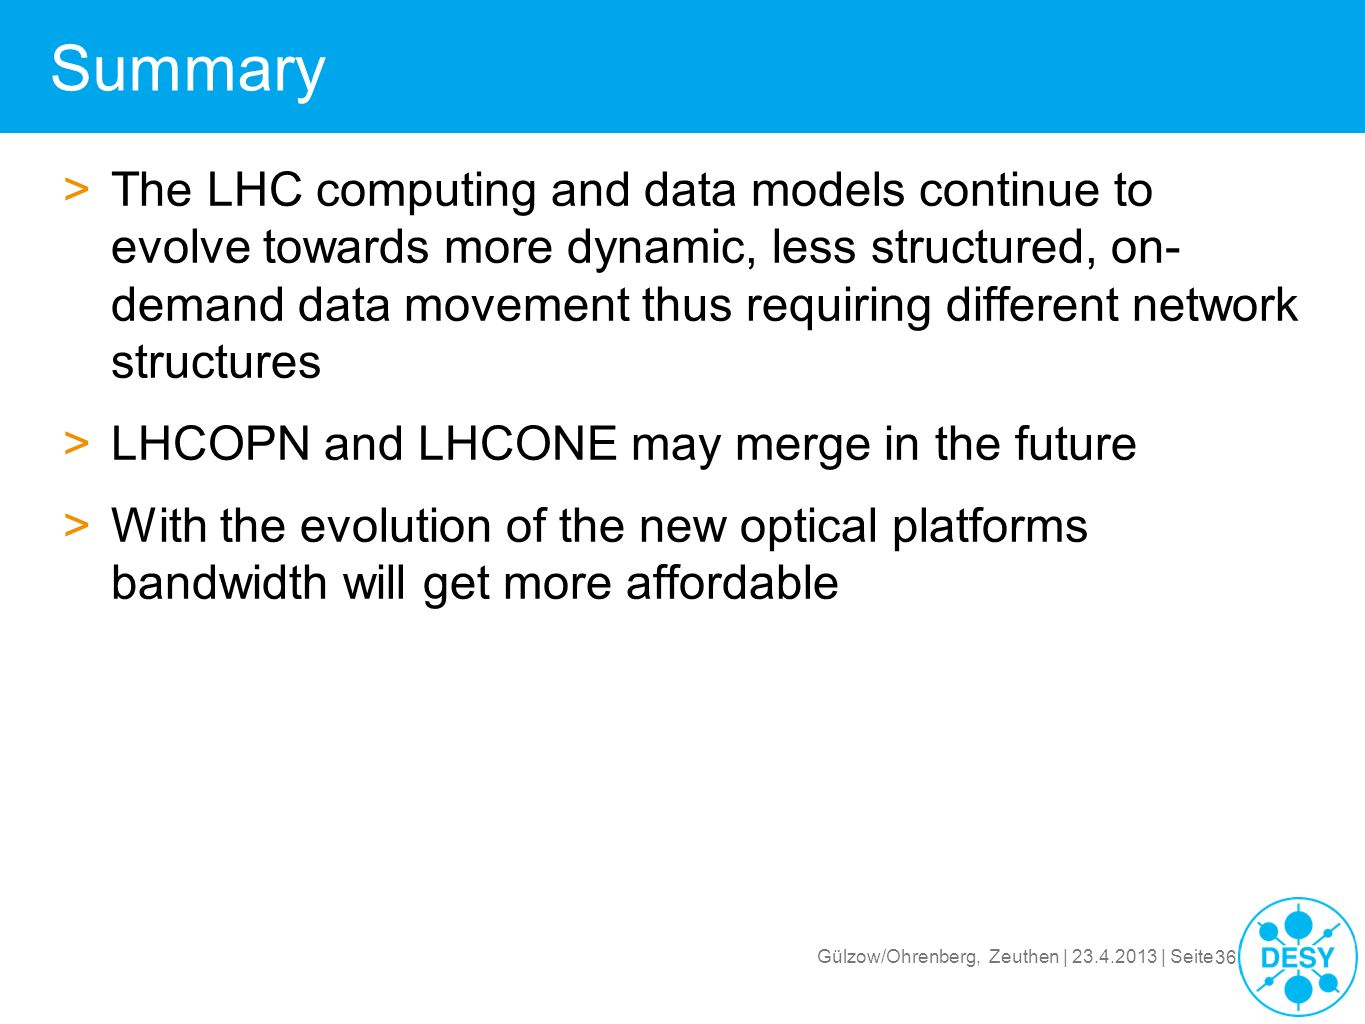 Gülzow/Ohrenberg, Zeuthen | 23.4.2013 | Seite 36 Summary >The LHC computing and data models continue to evolve towards more dynamic, less structured,